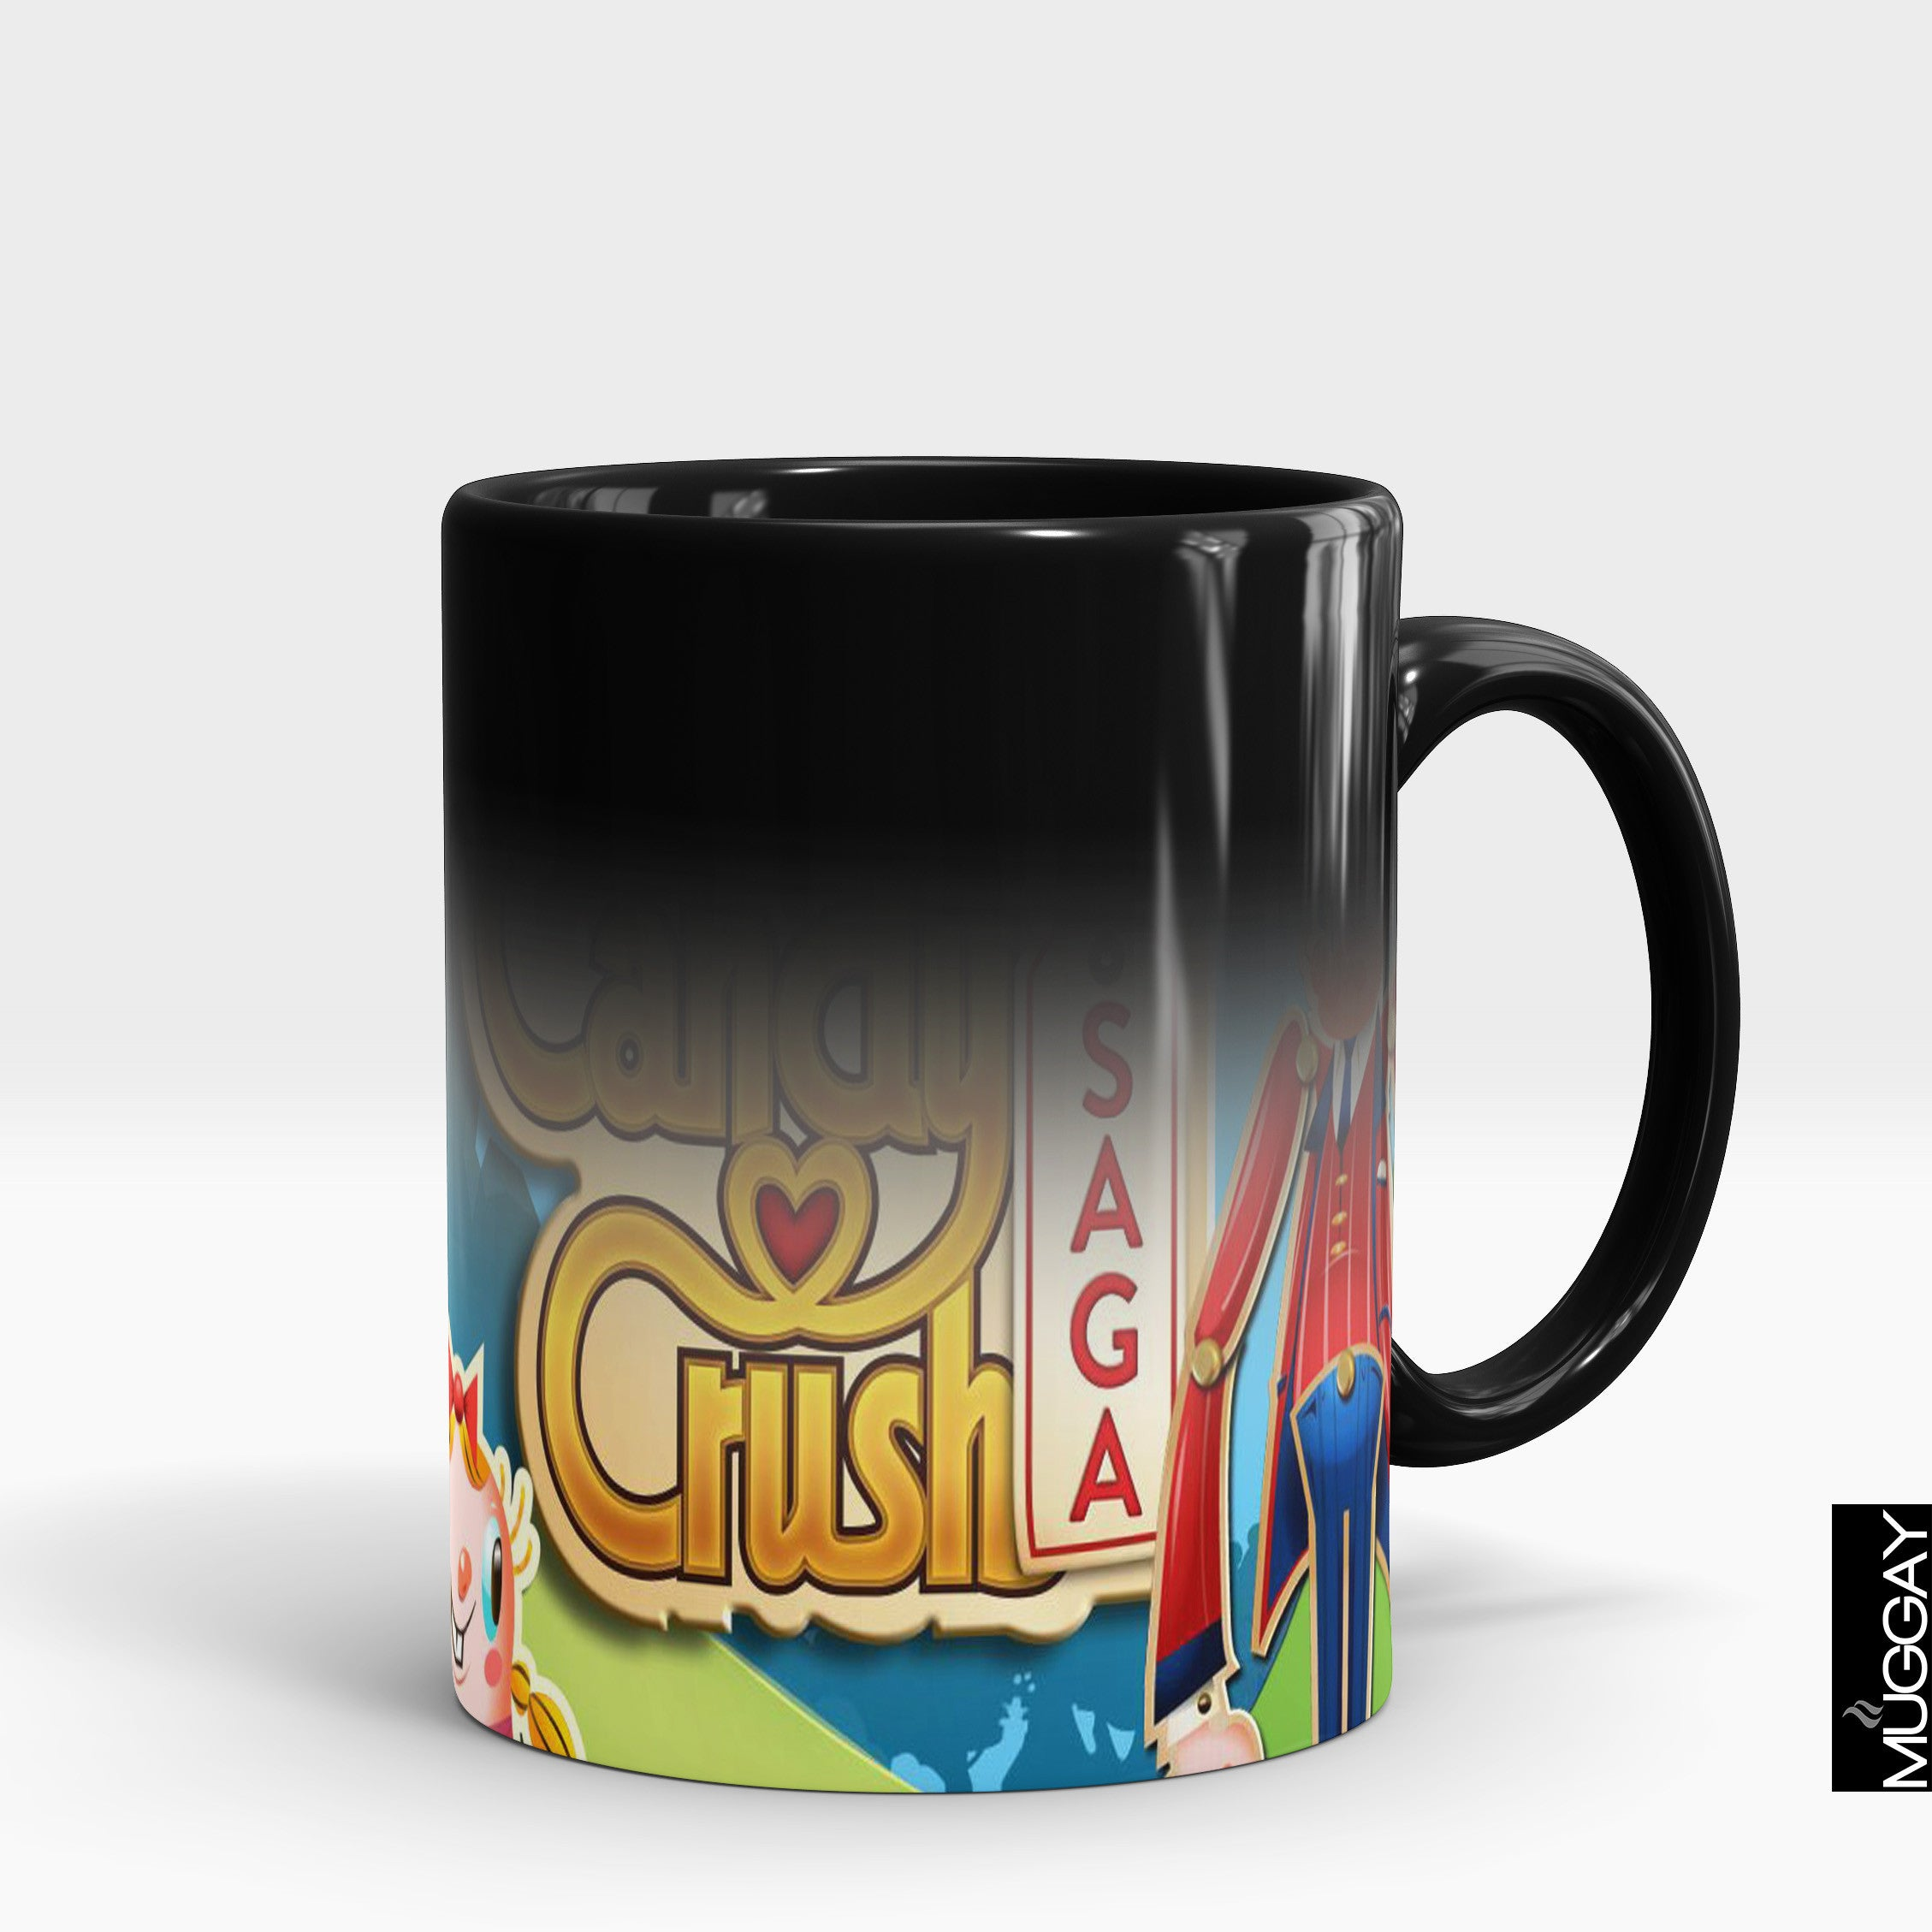 Candy crush Design candy9 - Muggay.com - Mugs - Printing shop - truck Art mugs - Mug printing - Customized printing - Digital printing - Muggay